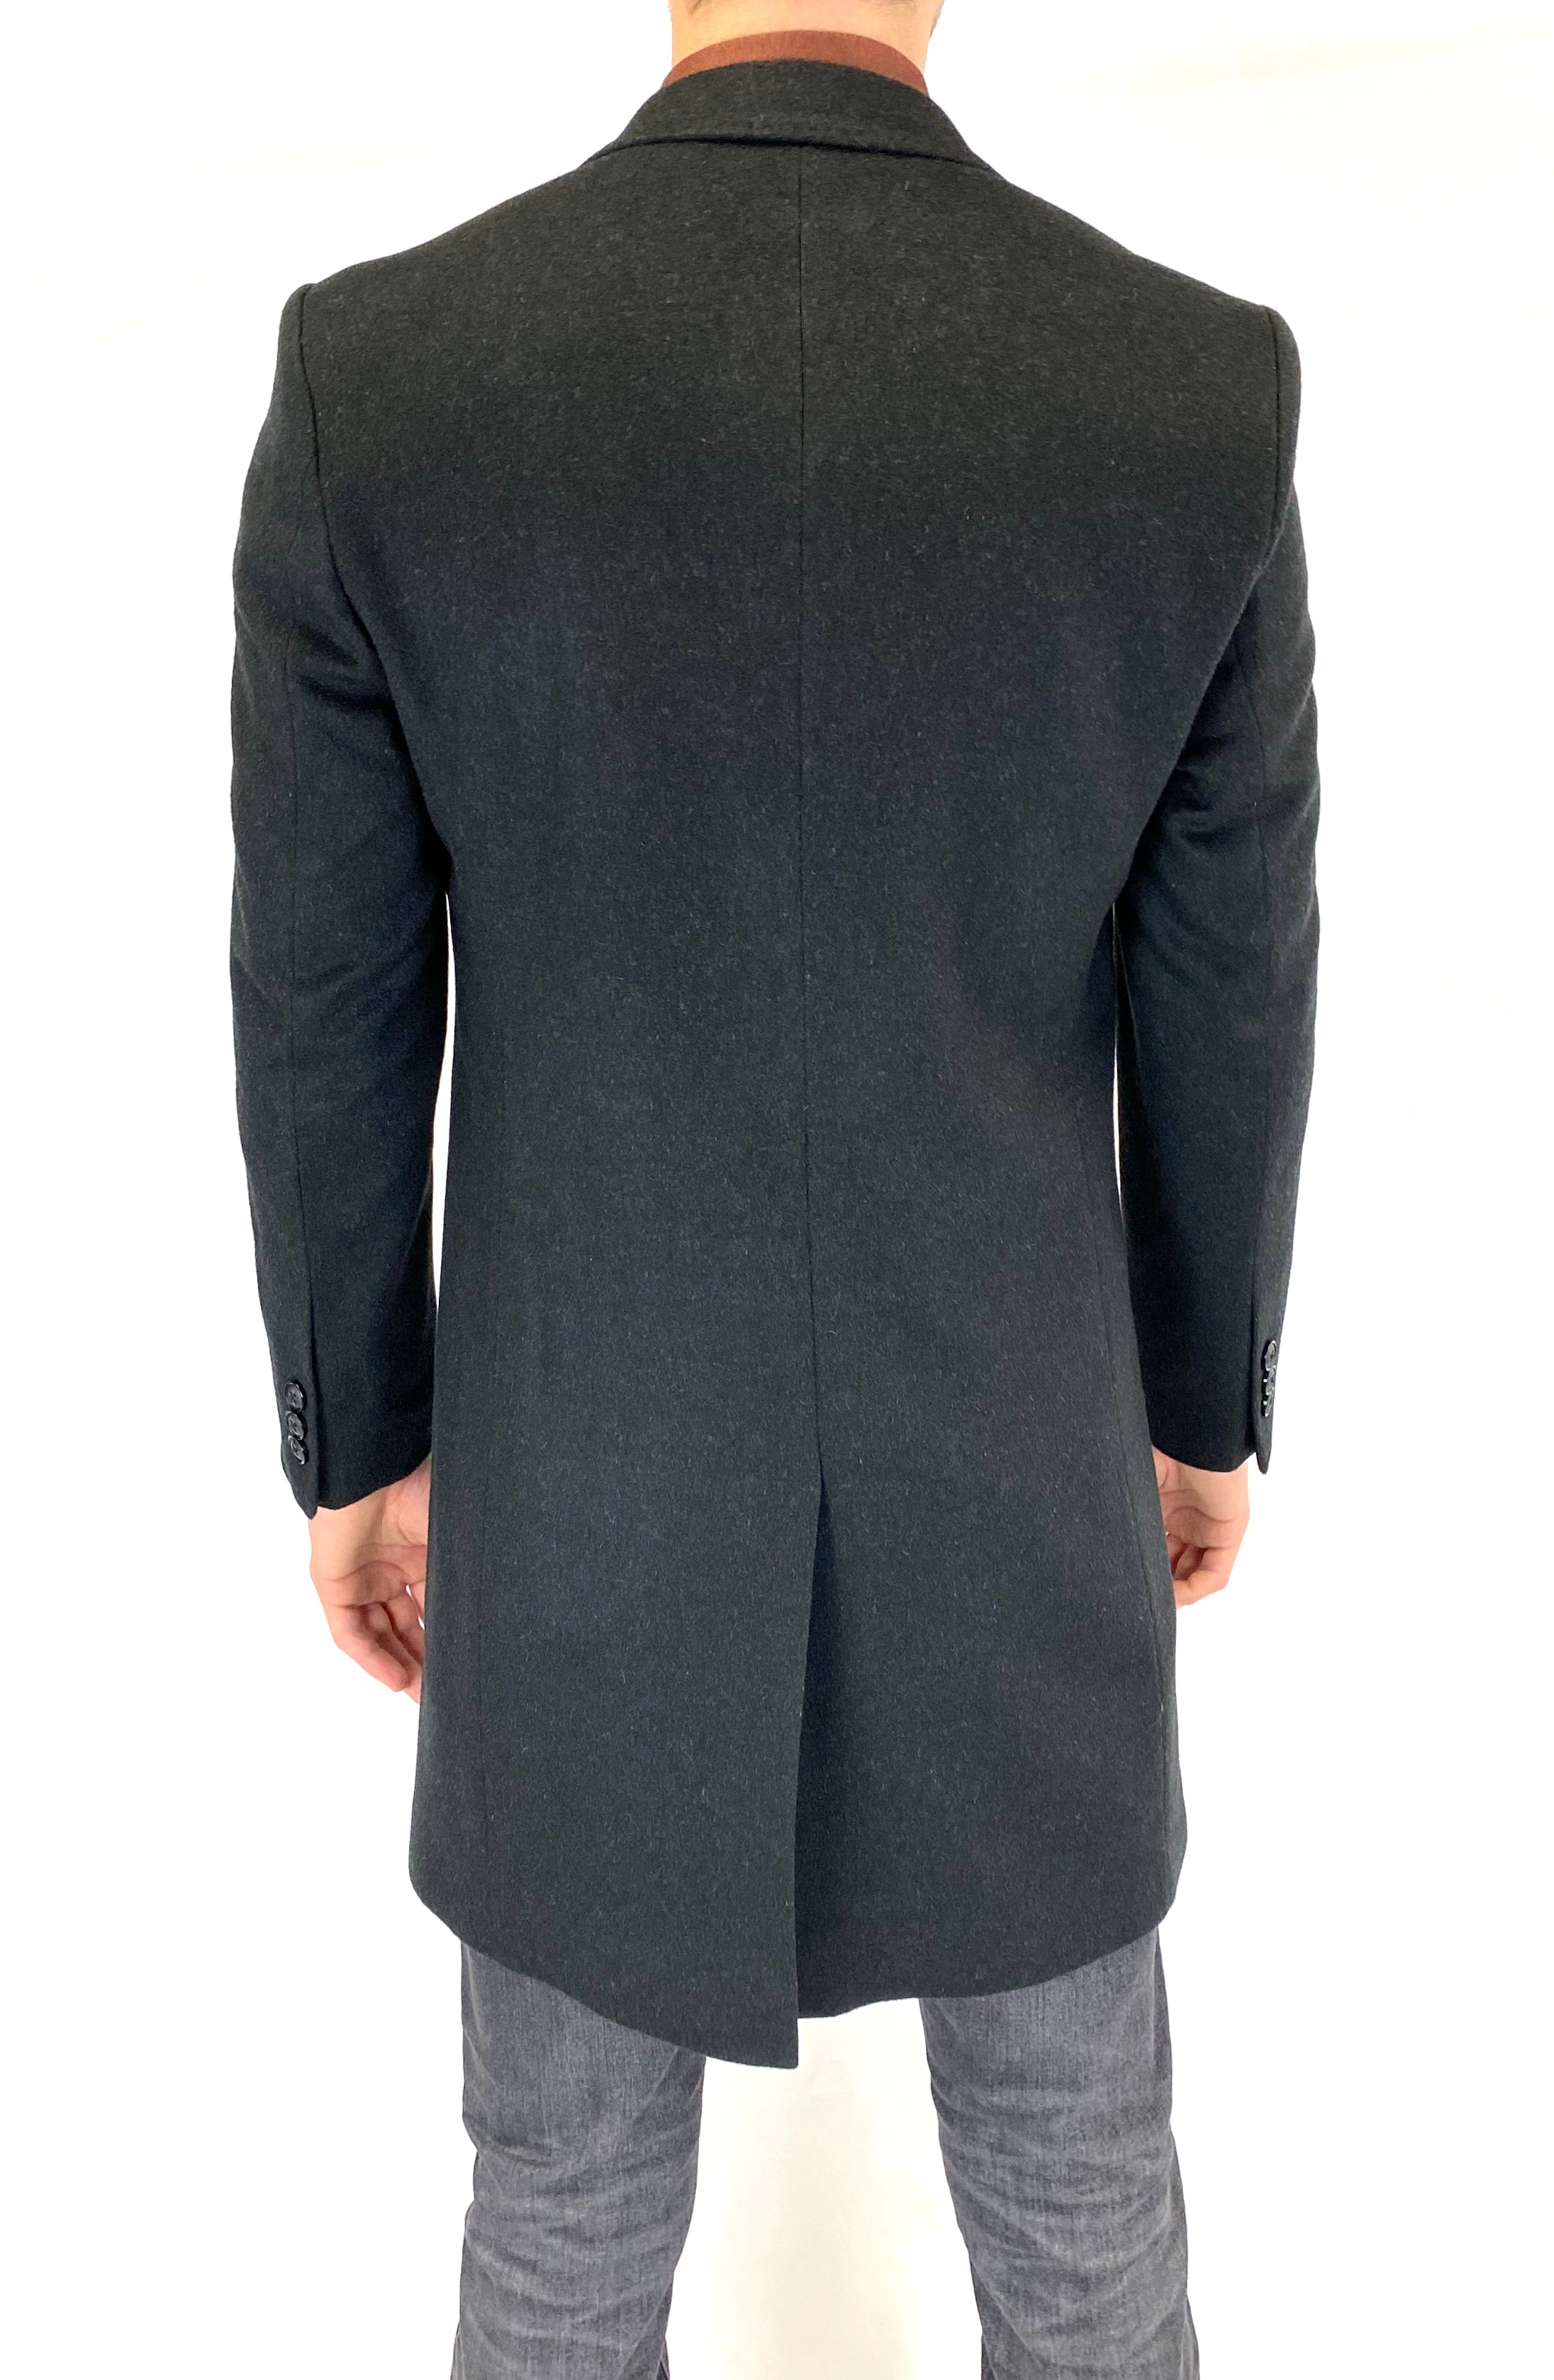 Sergio Barone Wool & Cashmere Overcoat in Charcoal